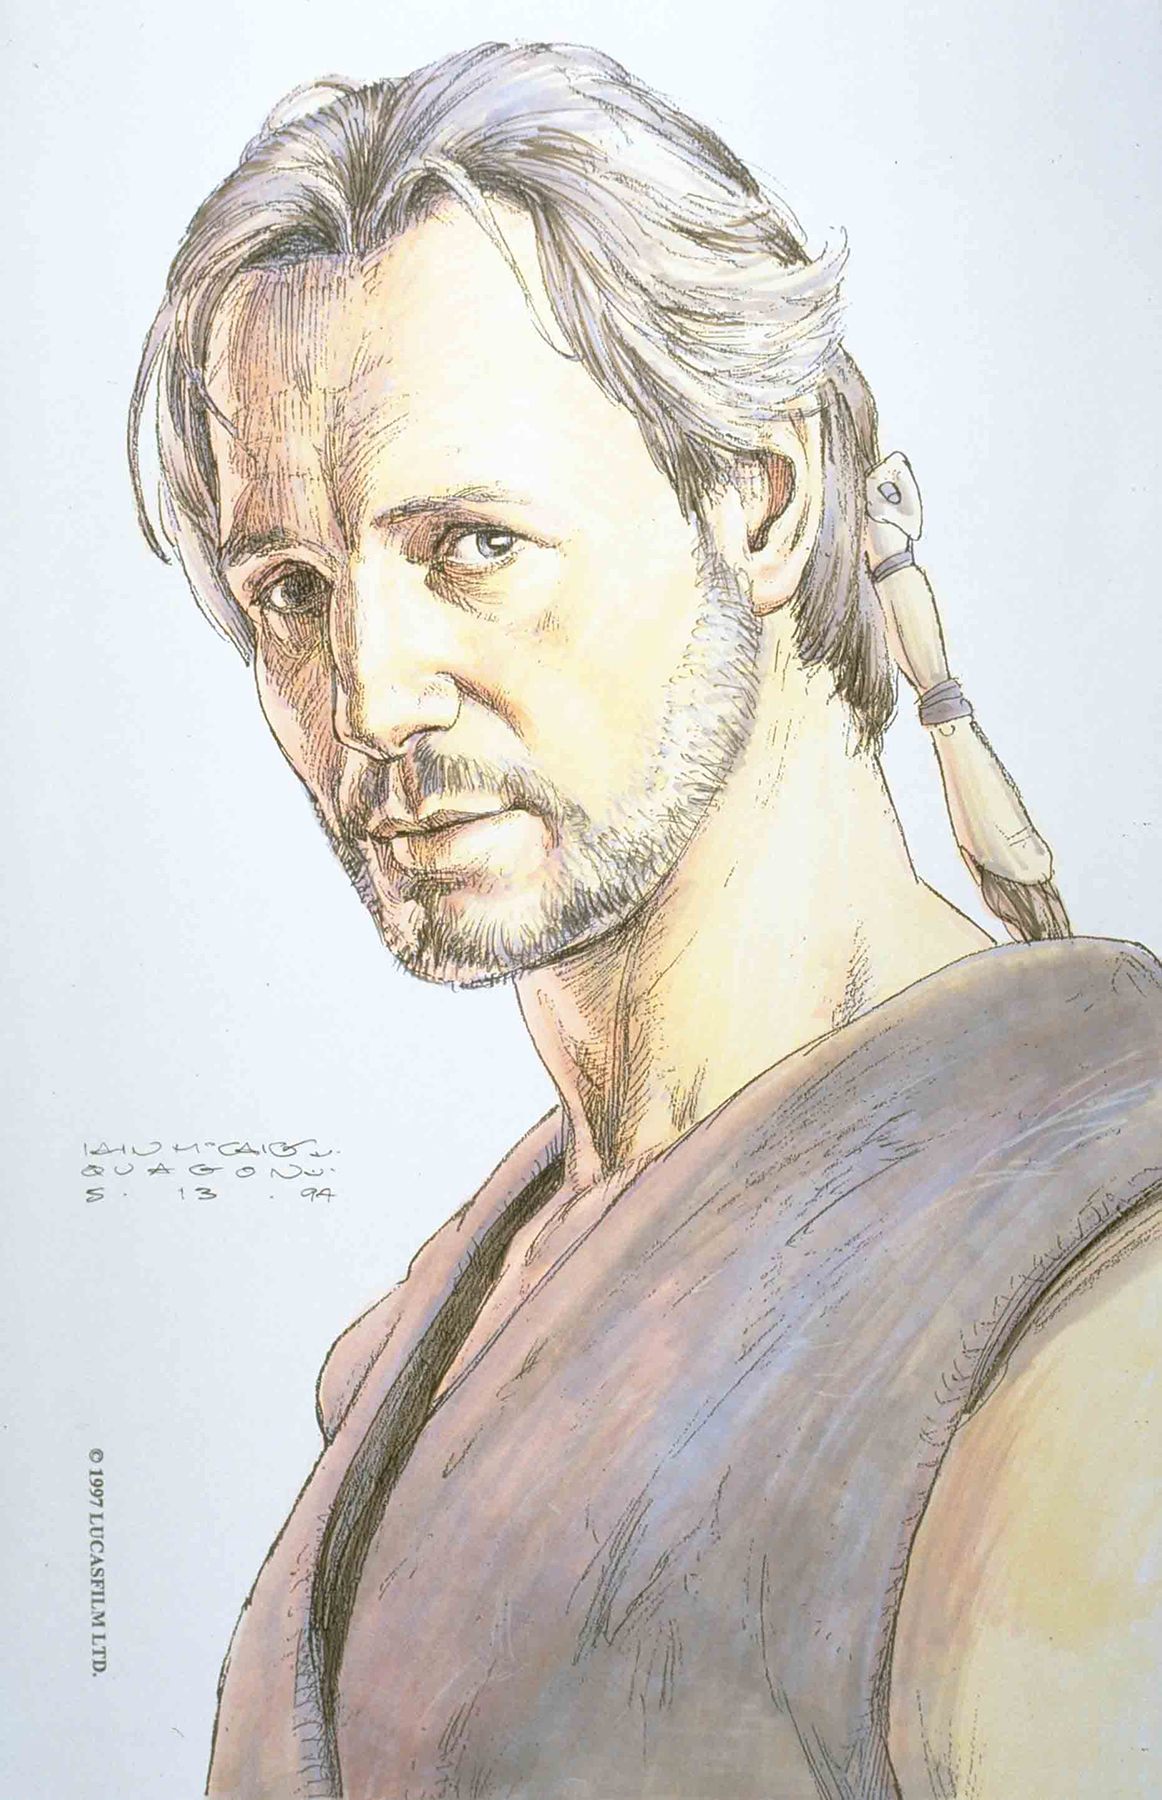 STAR WARS AGE REPUBLIC QUI-GON JINN #1 MCCAIG DESIGN VAR